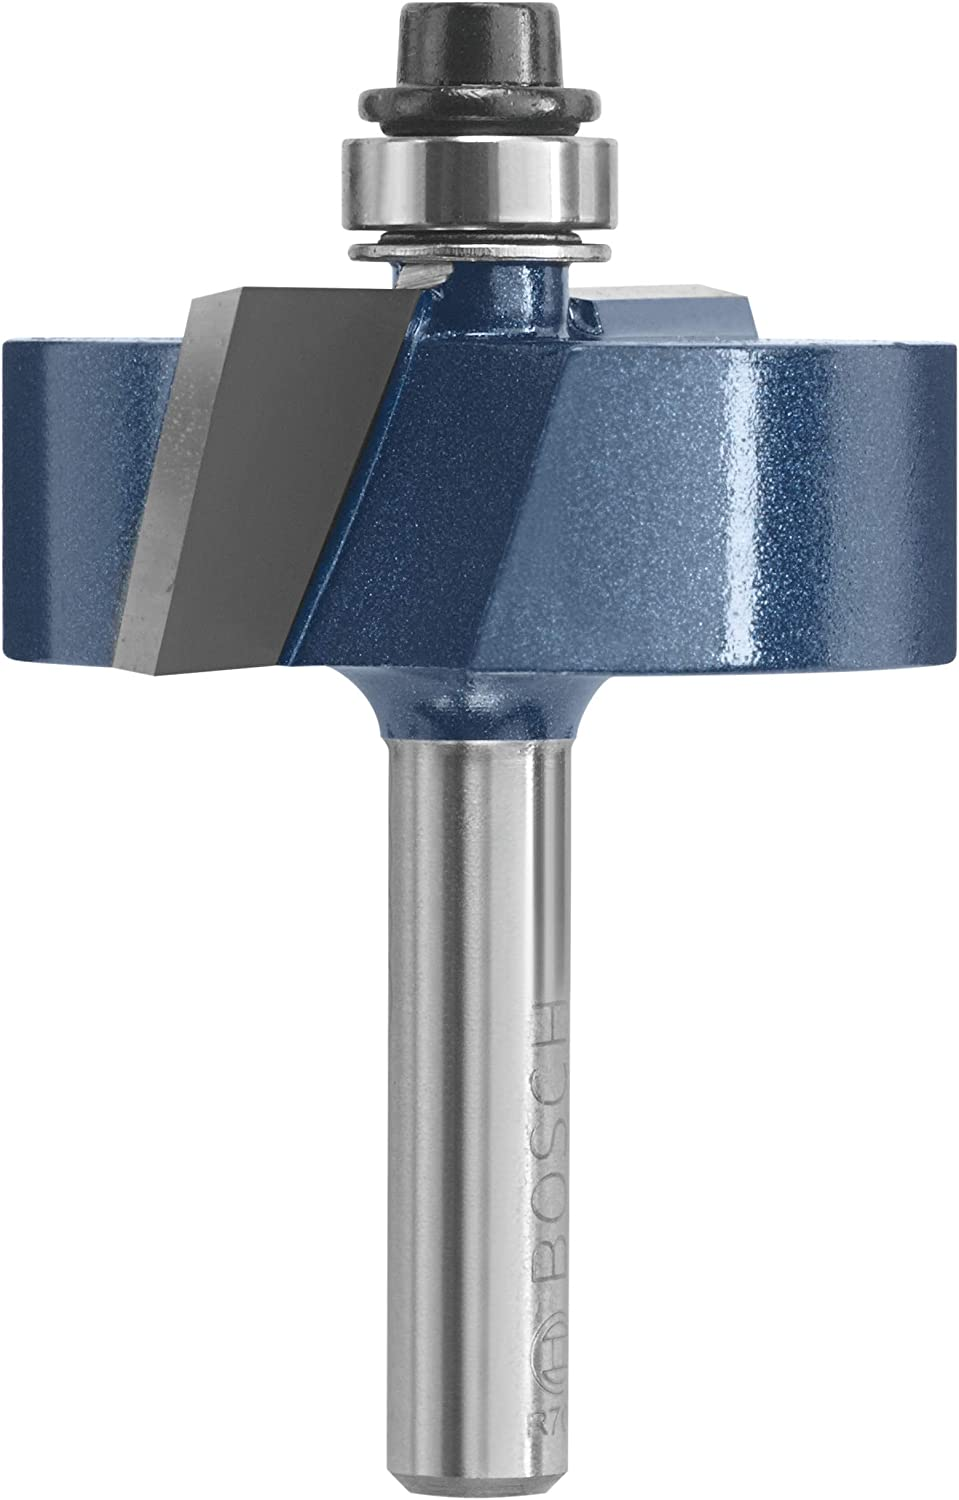 Bosch 85614M 1-1//2-Inch Diameter 1//2-Inch Cut Carbide Tipped Rabbeting Router Bit 1//4-Inch Shank with Bearing